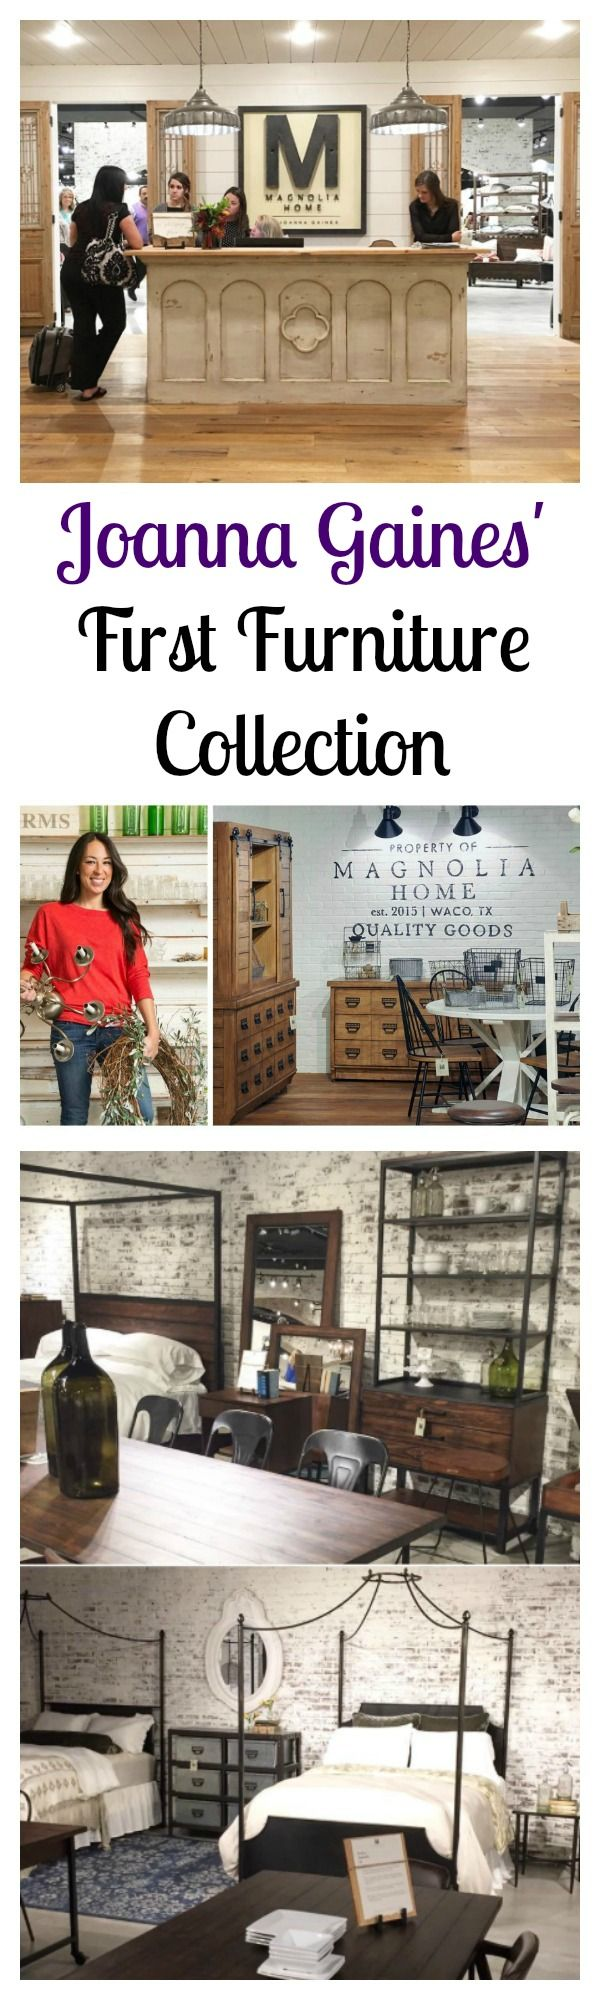 """Have you ever wished you could be on an episode of HGTV's """"Fixer Upper""""? Well, you will soon be able to welcome the same country chic design aesthetic the show is known for into your home thanks to the Gaines' latest project, Magnolia Home Furnishing by Joanna Gaines."""